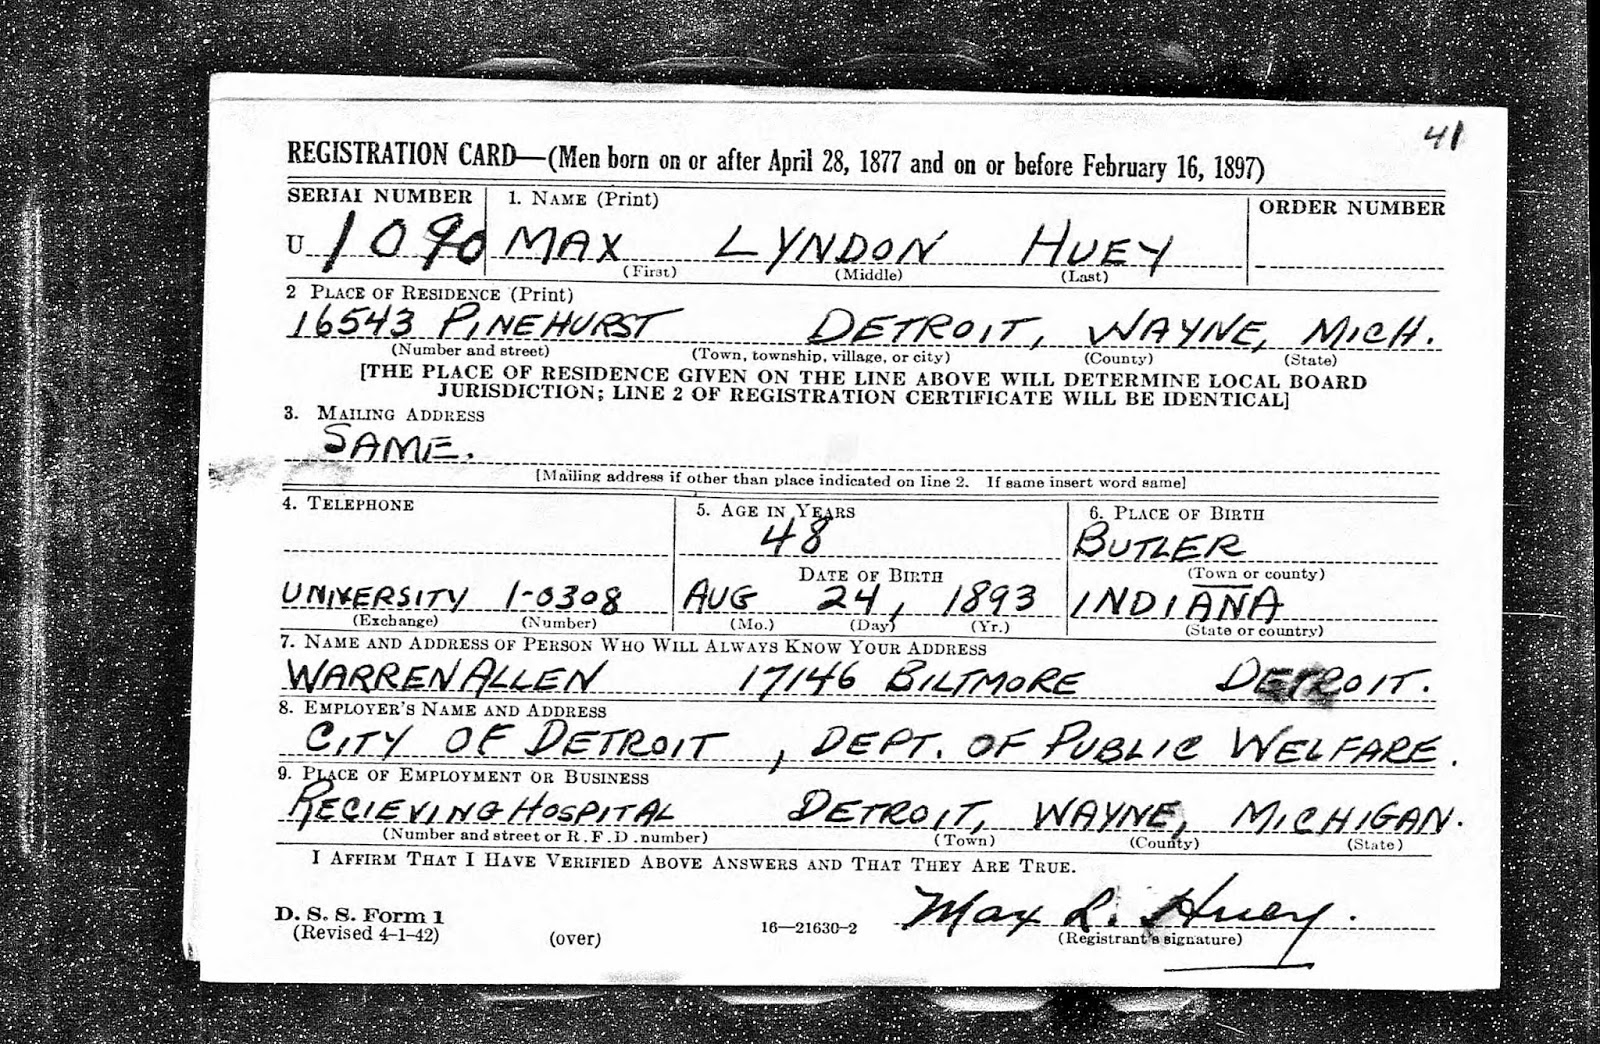 Shaky leaves harvey a huey 1866 1947 tjl genes preserving his full name was max lyndon huey and he worked for the city of detroit in the department of public welfare which matches the 1940 census record aiddatafo Choice Image